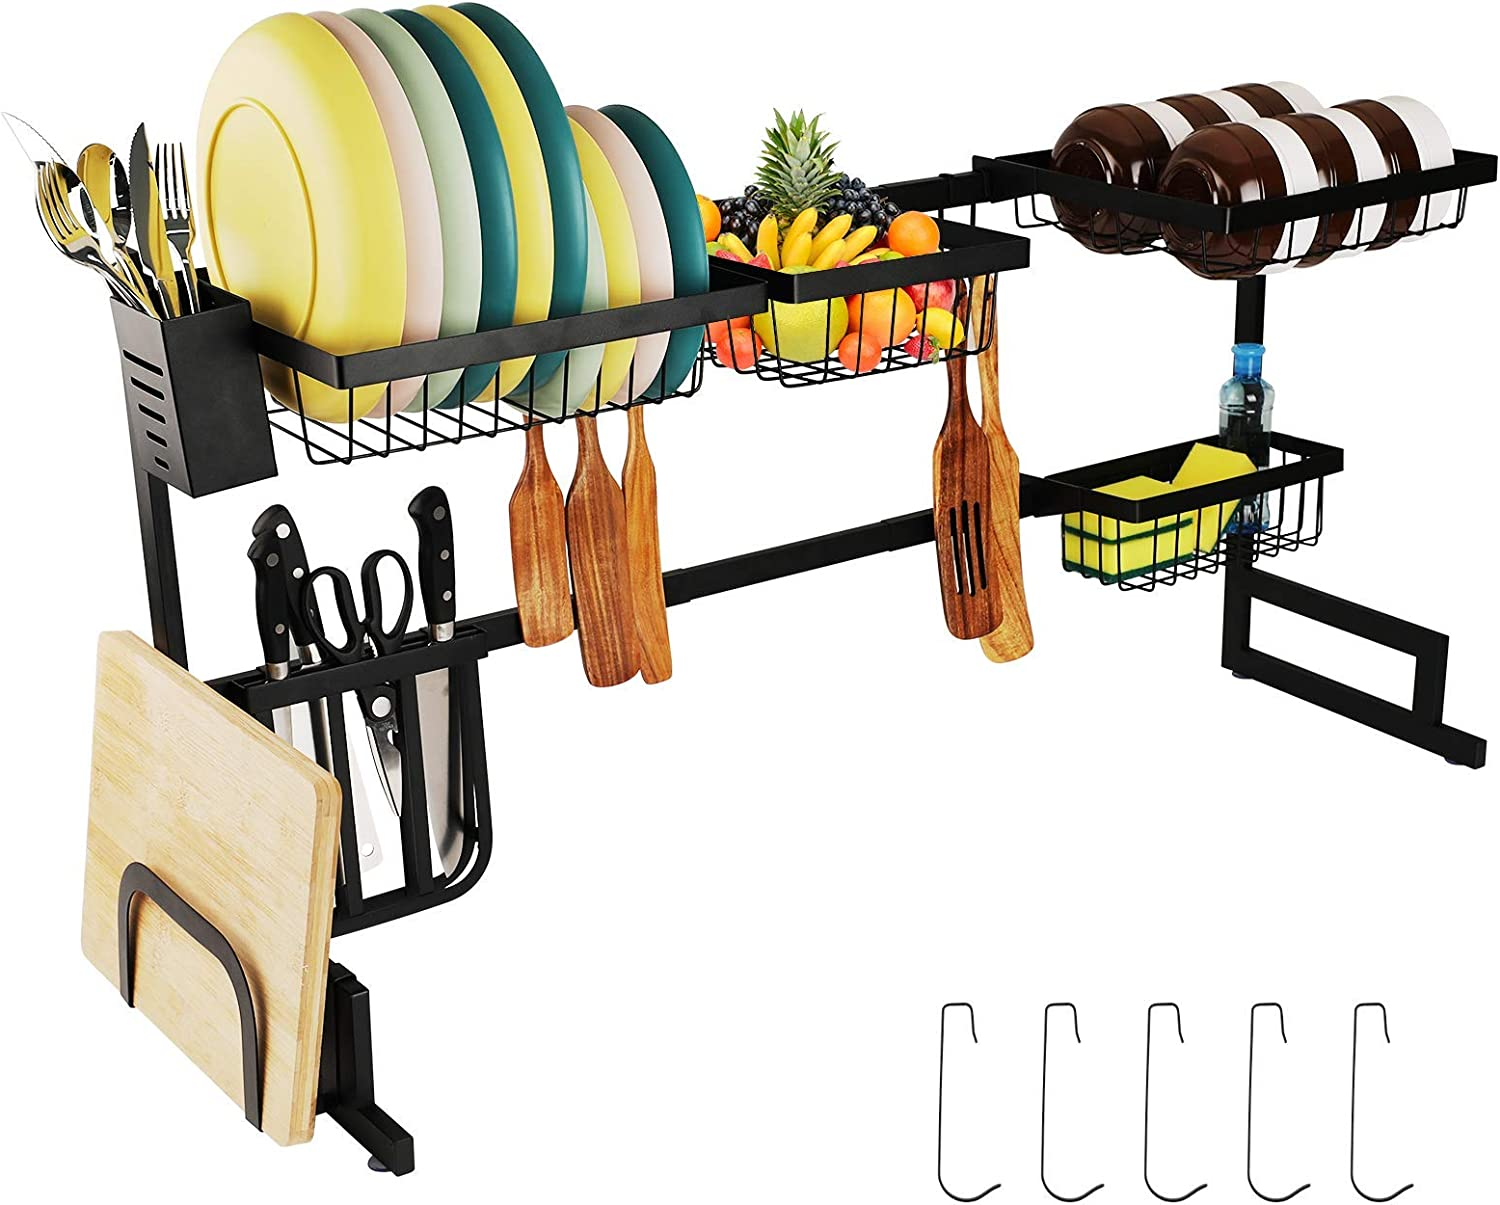 Naisicore Over The Spasm Shipping included price Sink Dish Draine Adjustable Drying Rack